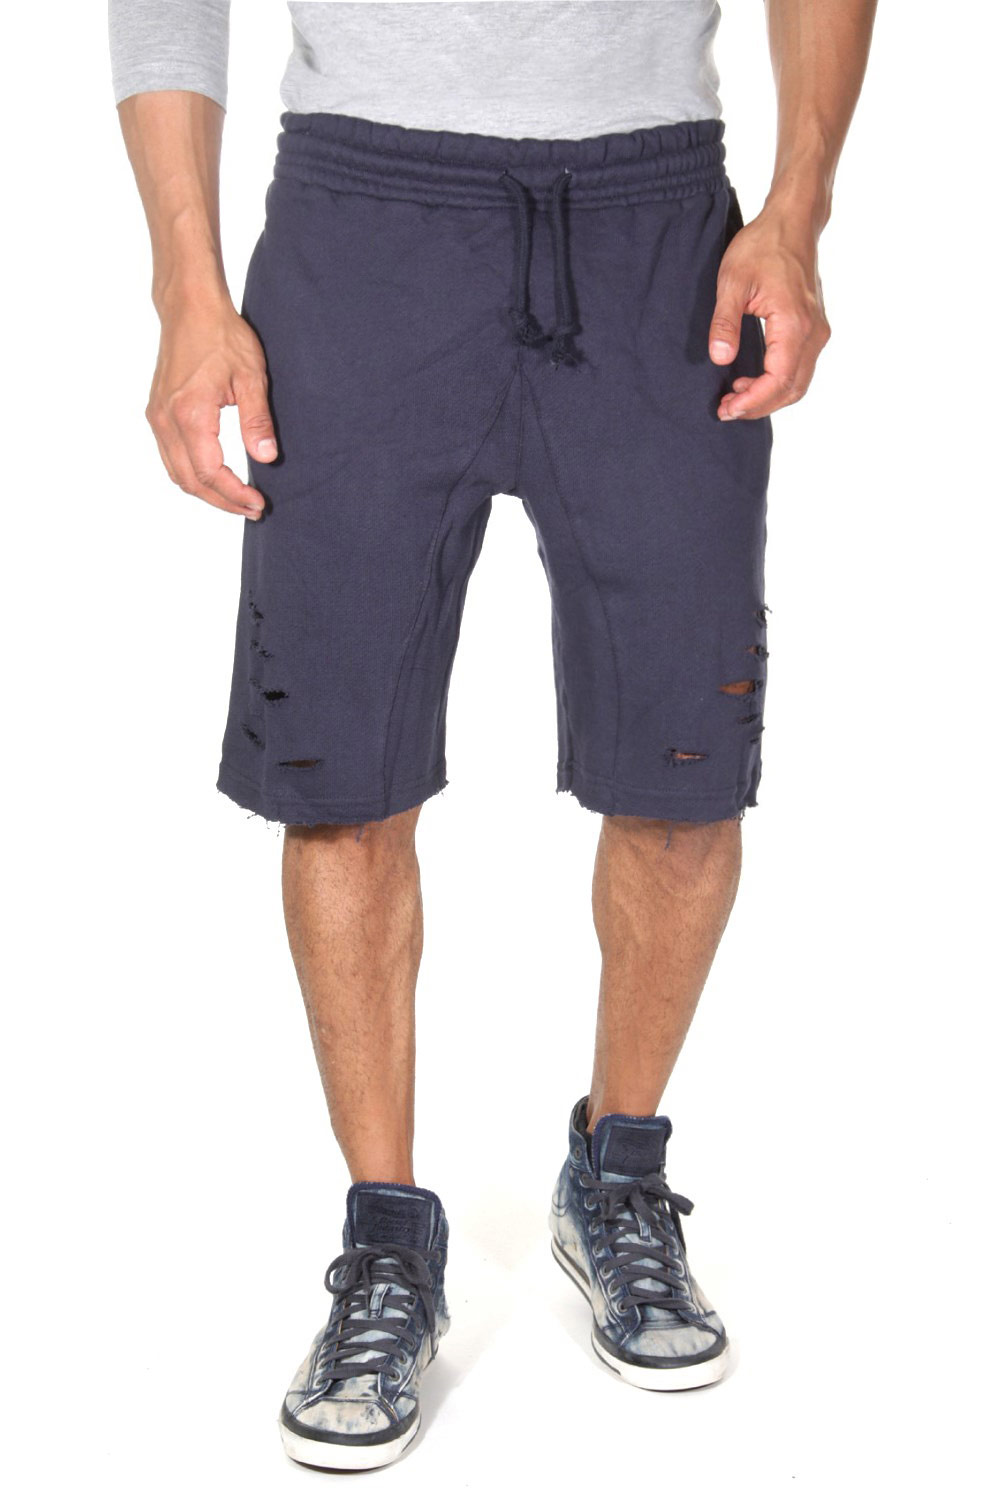 KING BROTHERS Workoutshorts auf oboy.de